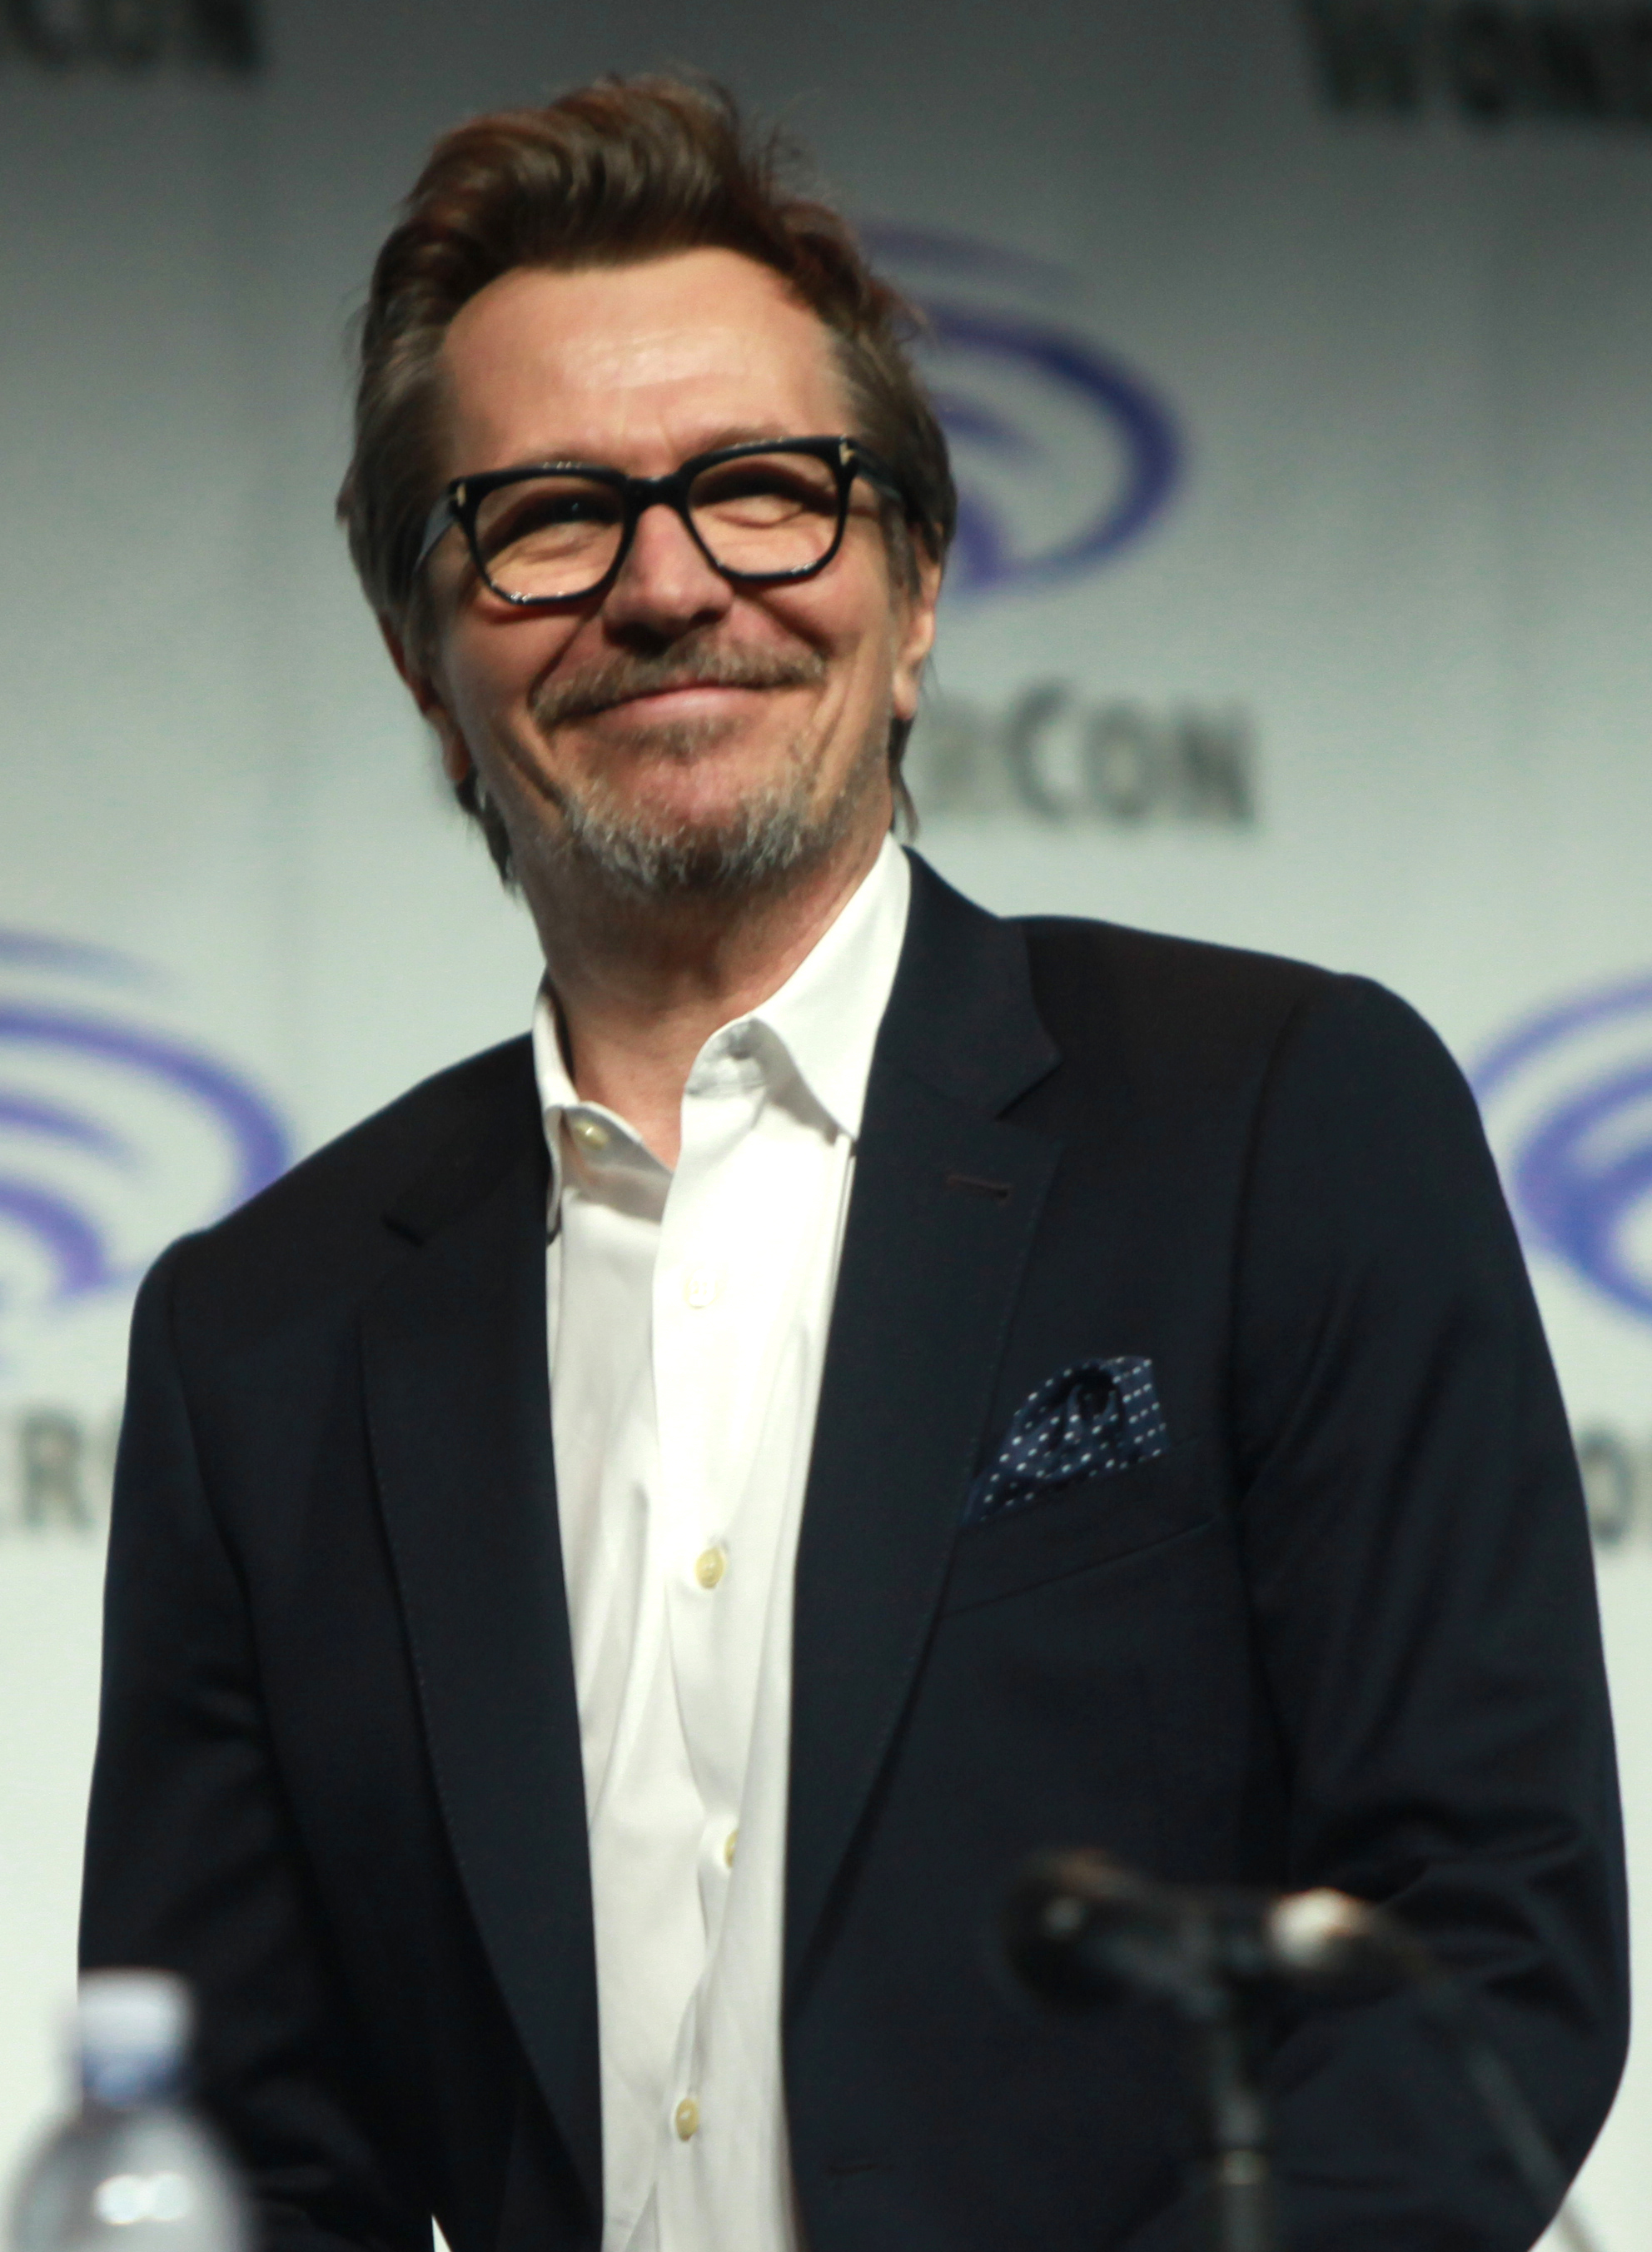 Gary Oldman photo #111900, Gary Oldman image